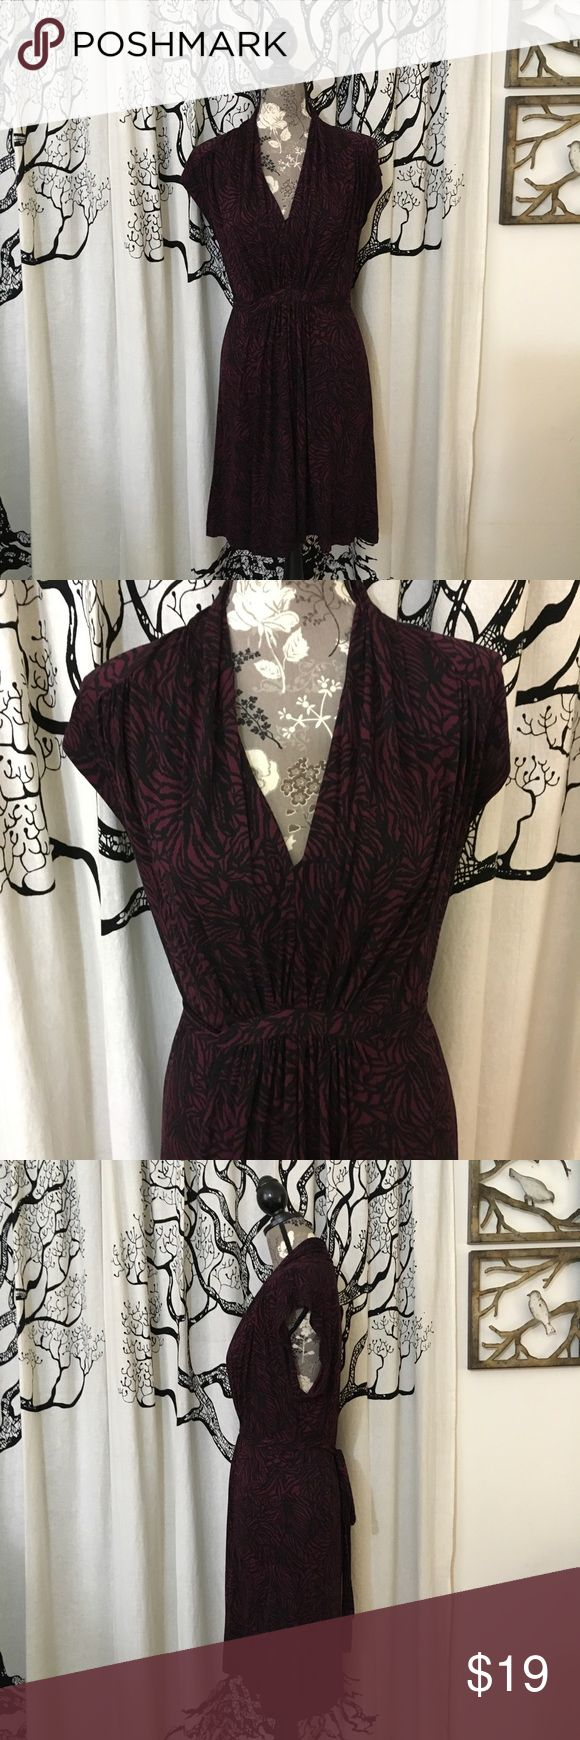 French Connection Soft Tie Back Dress Beautiful soft French Connection dress in oxblood and black. Gathered waist at the front with sash tie in the back. V-neck with flutter cap sleeves. Rayon/cotton/spandex. Perfect condition with no signs of wear (worn once). Measurements provided in photos. Looks great with a black cardigan or jacket, tights and boots! French Connection Dresses Midi